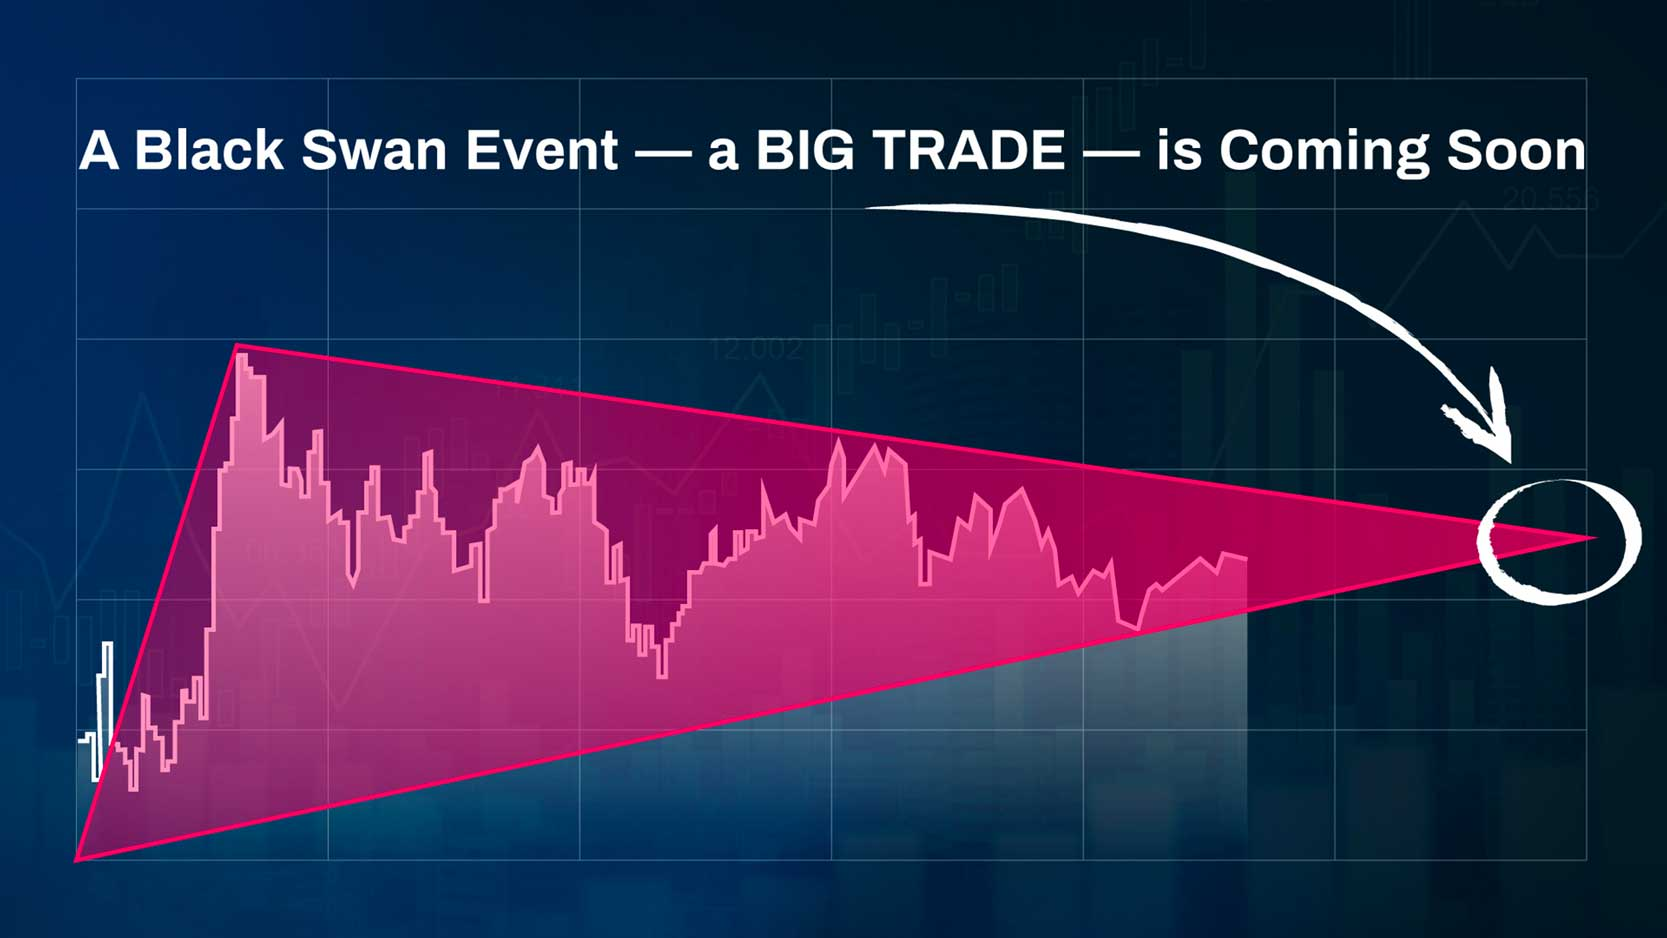 andy krieger big big trade black swan event